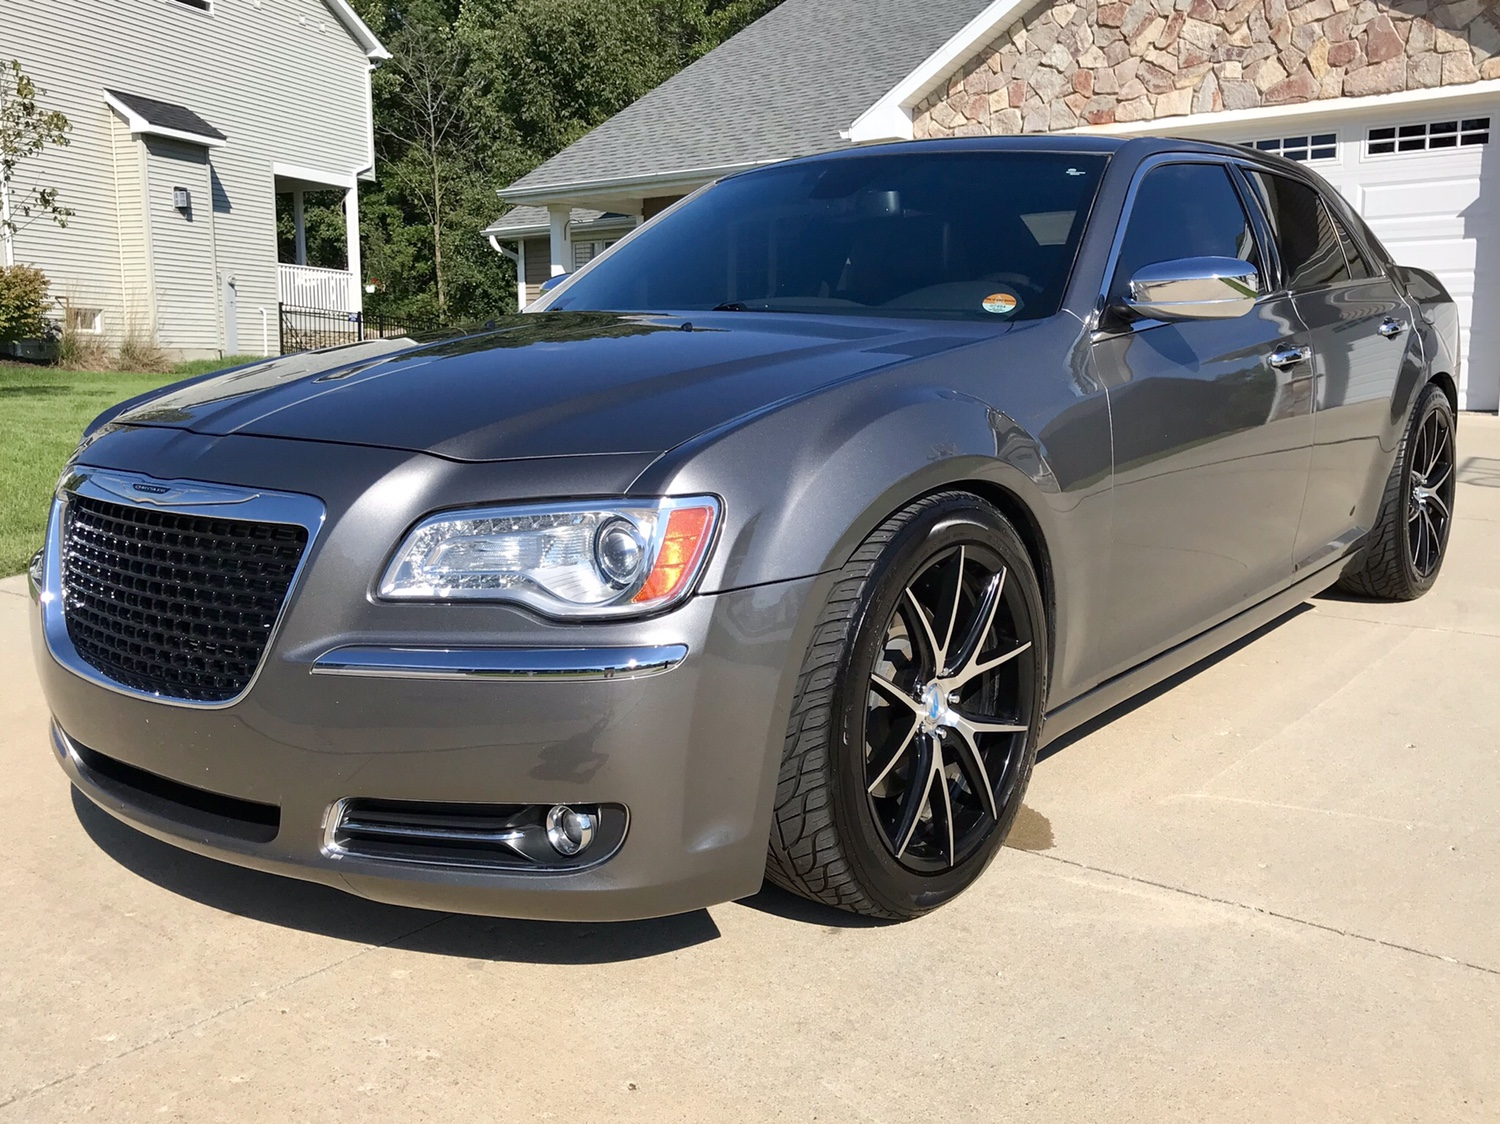 for sale 2011 chrysler 300c awd 5 7l hemi. Black Bedroom Furniture Sets. Home Design Ideas